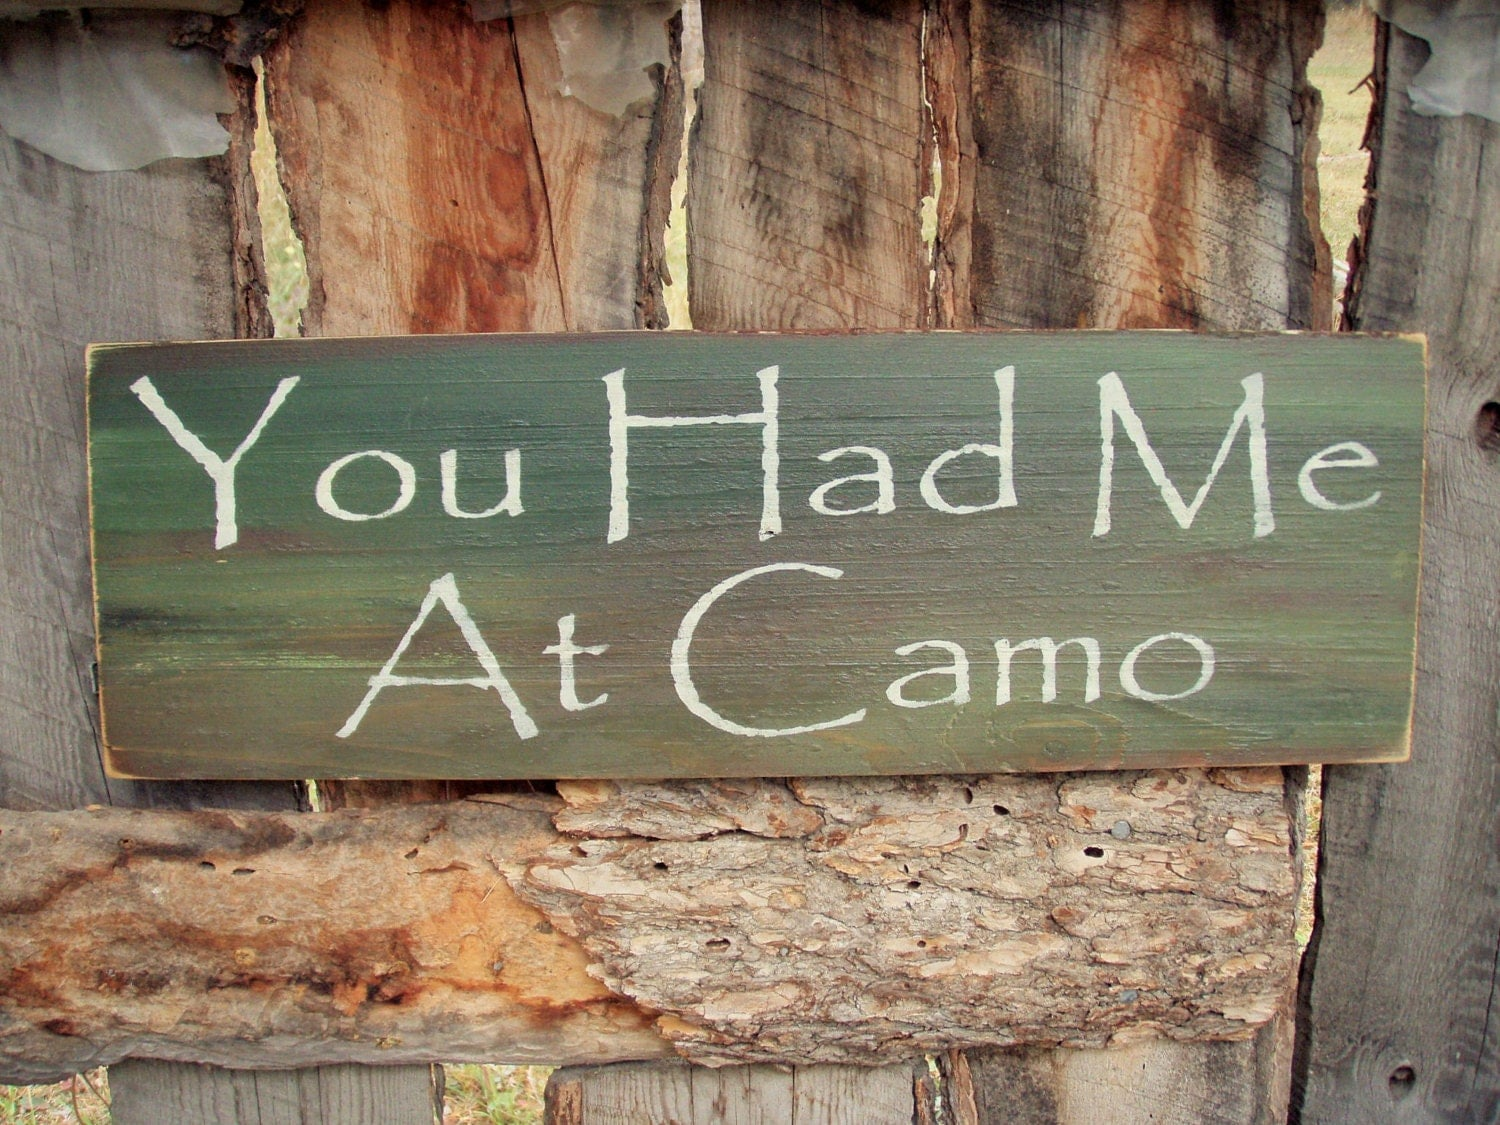 Military Man Cave Signs : You had me at camo sign camouflage wedding rustic